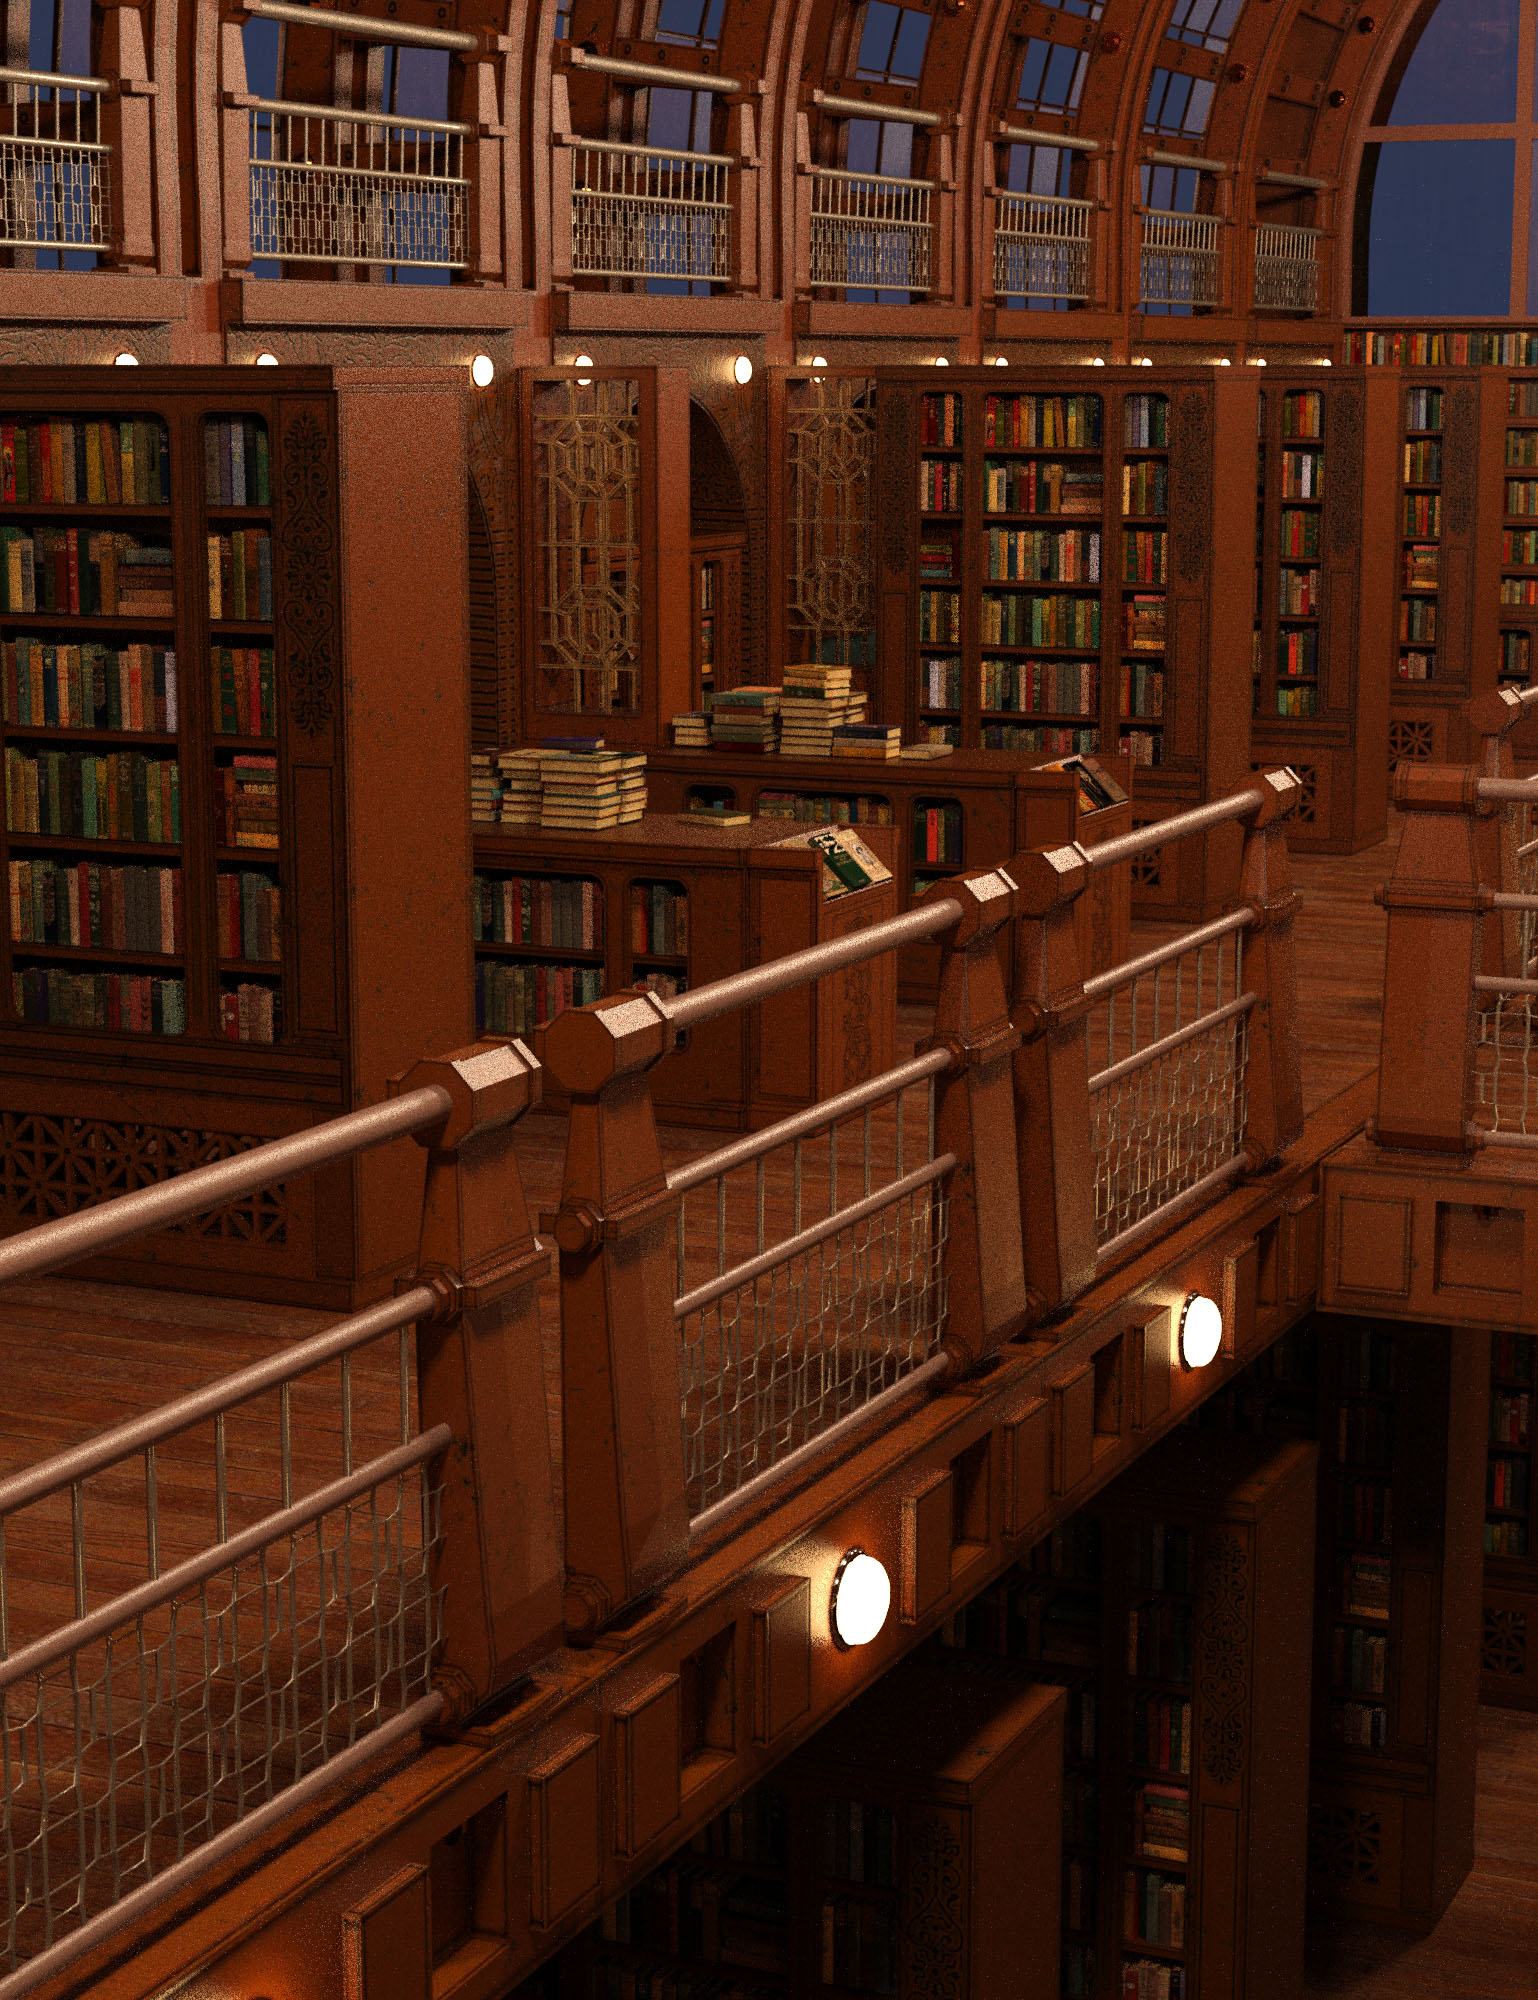 The Great Library by: Oskarsson, 3D Models by Daz 3D